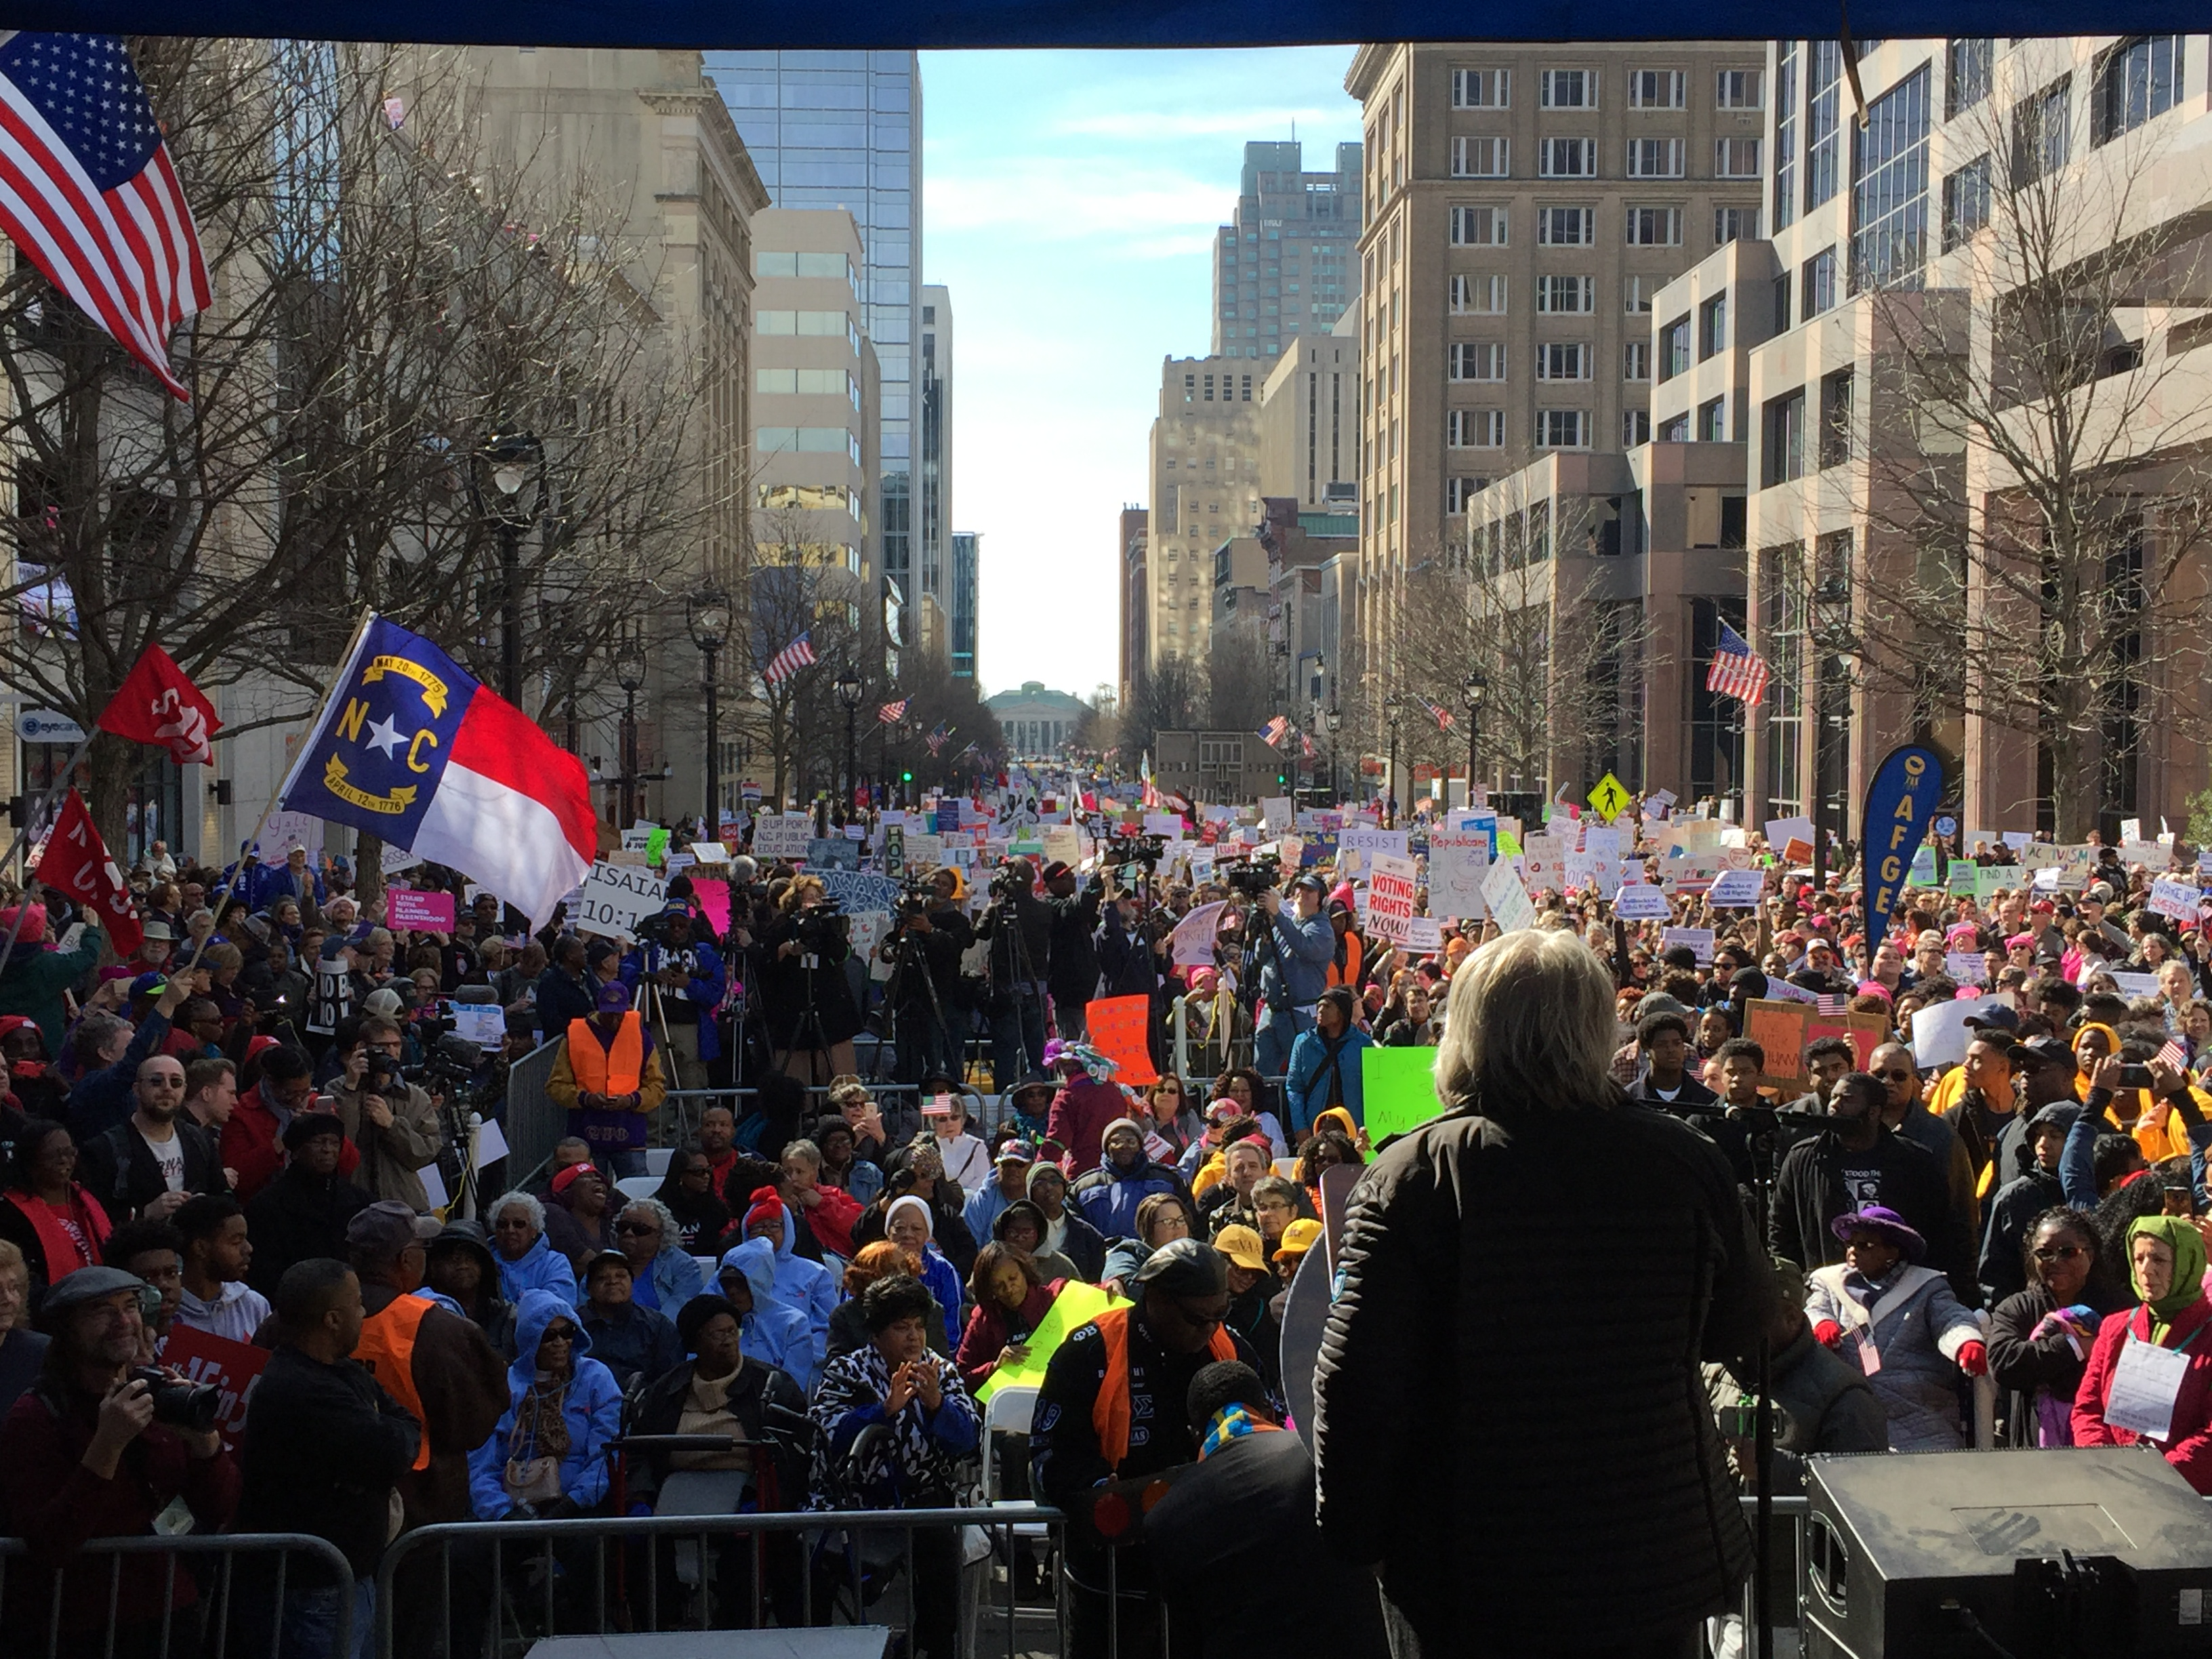 The 2017 Moral March in Raleigh, NC.